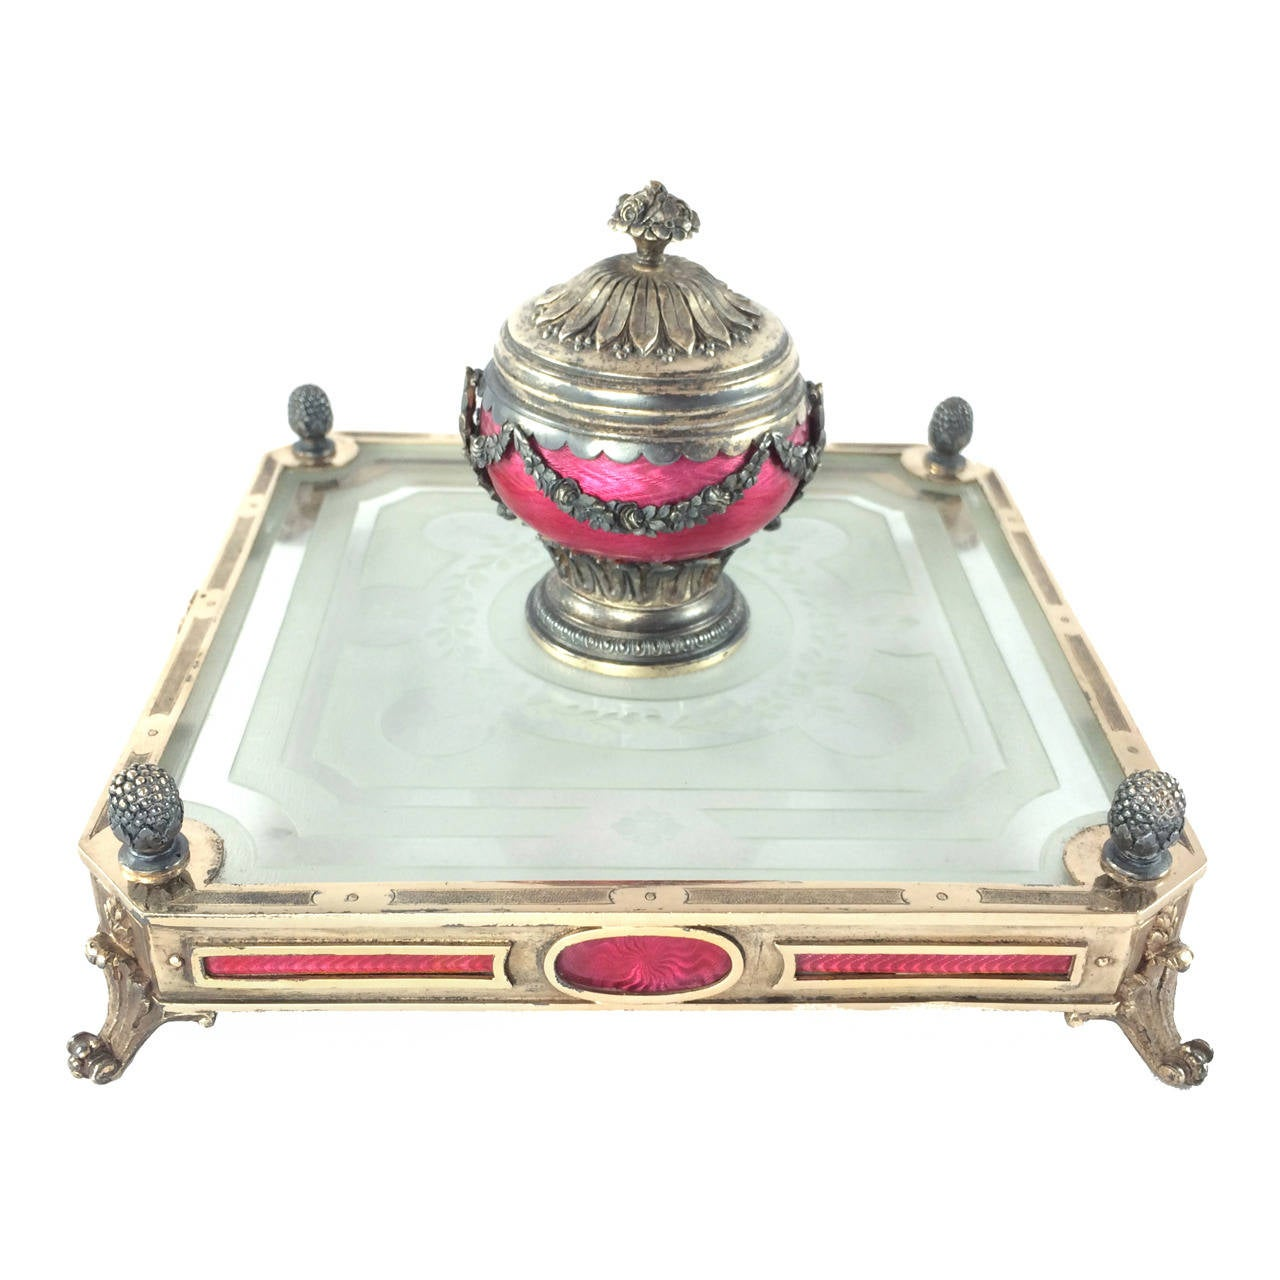 Early 20th Century French Guilloché Enamel and Gilt Silver Inkwell